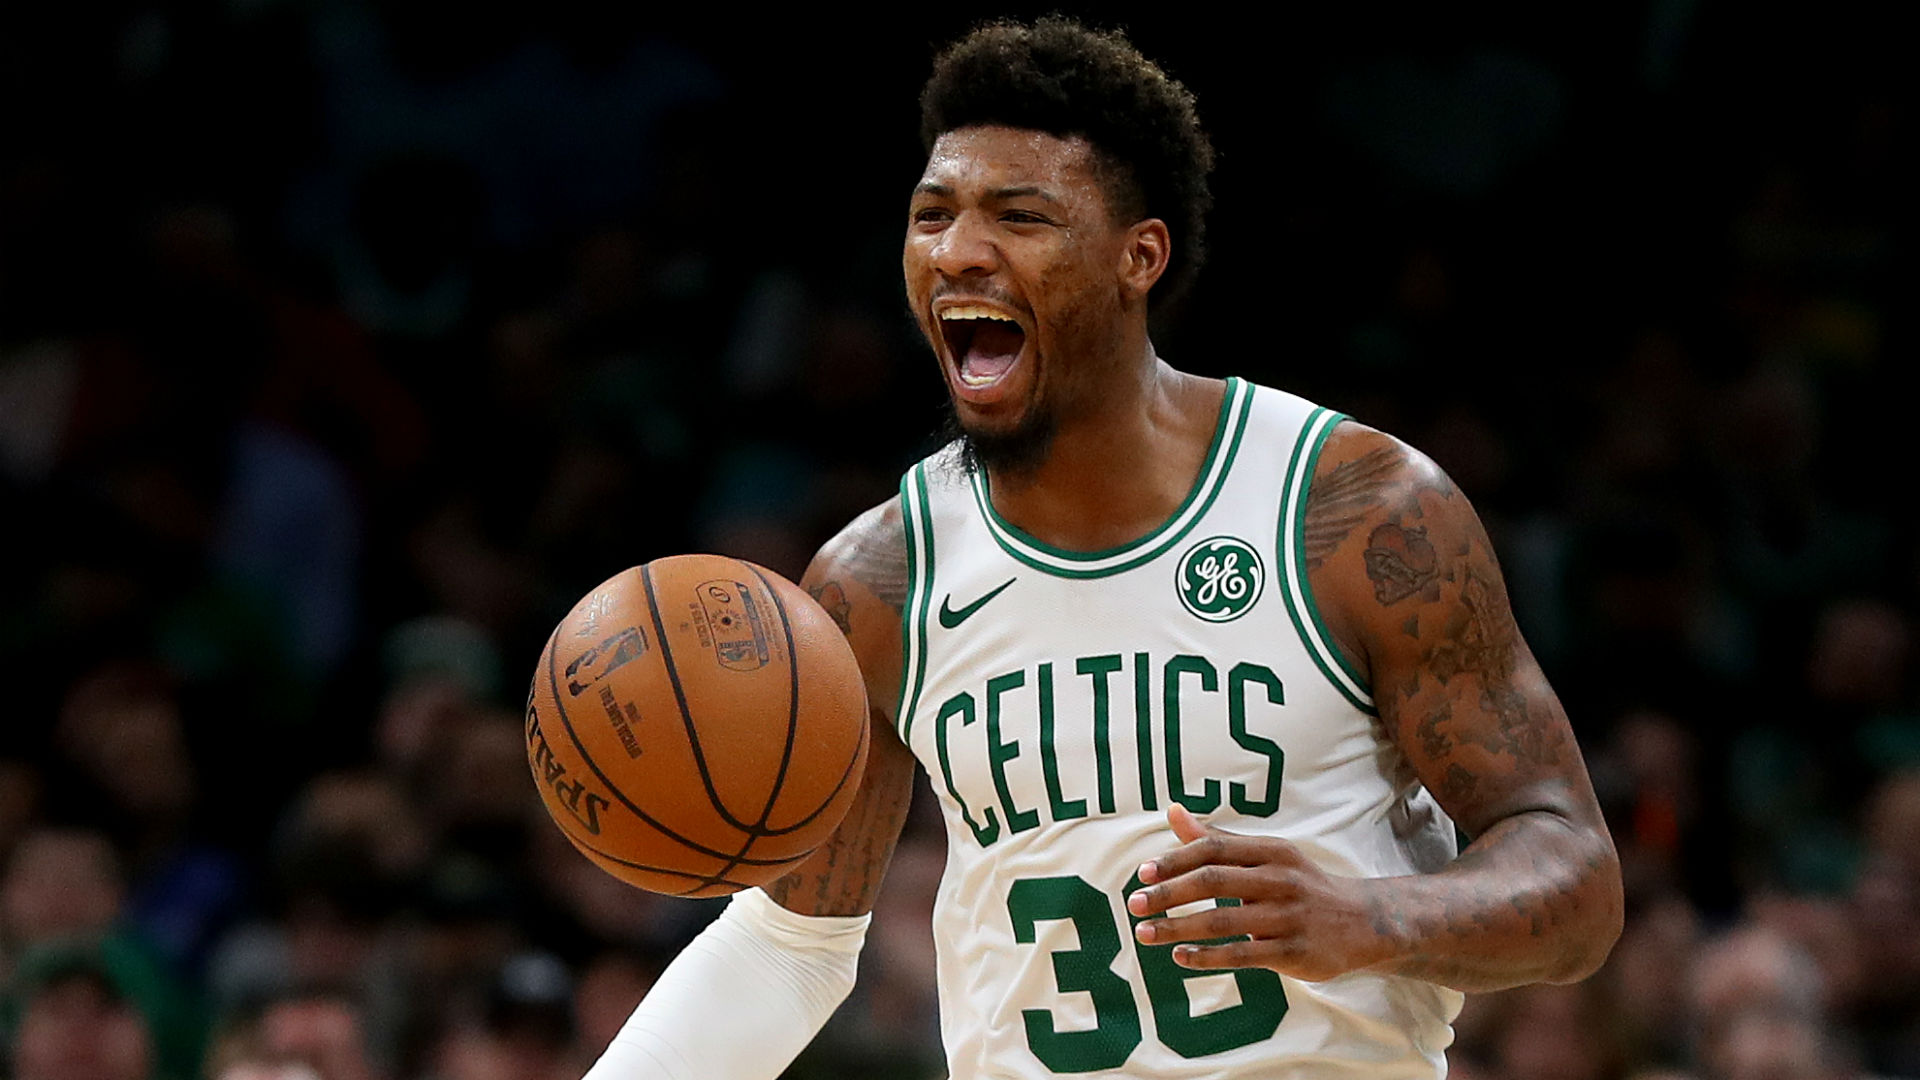 How will Marcus Smart's injury affect the Celtics in playoffs?